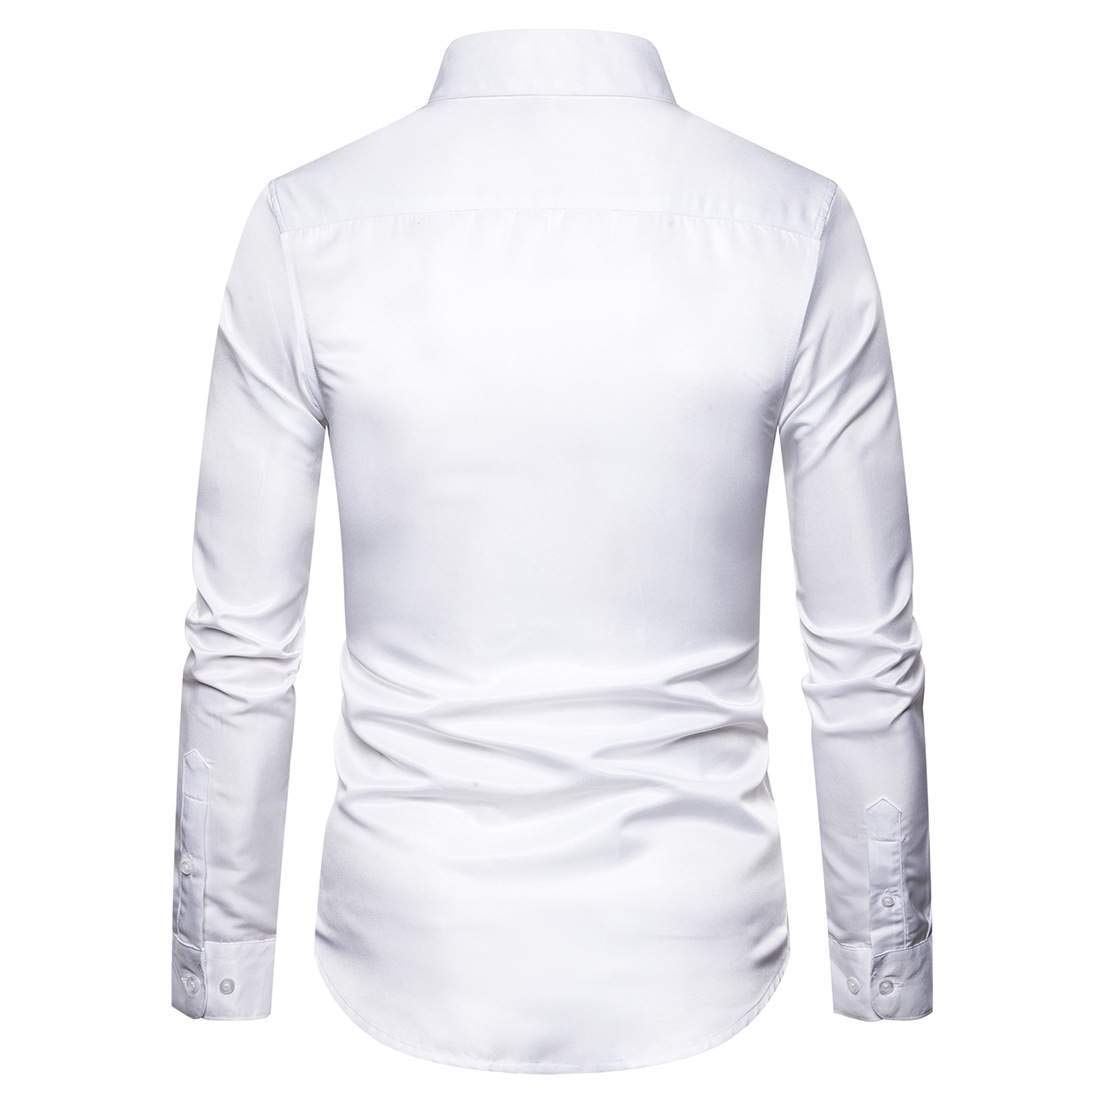 Abeaicoc Mens Button Down Regular Fit Shirts Embroidery Long Sleeve Dress Shirts